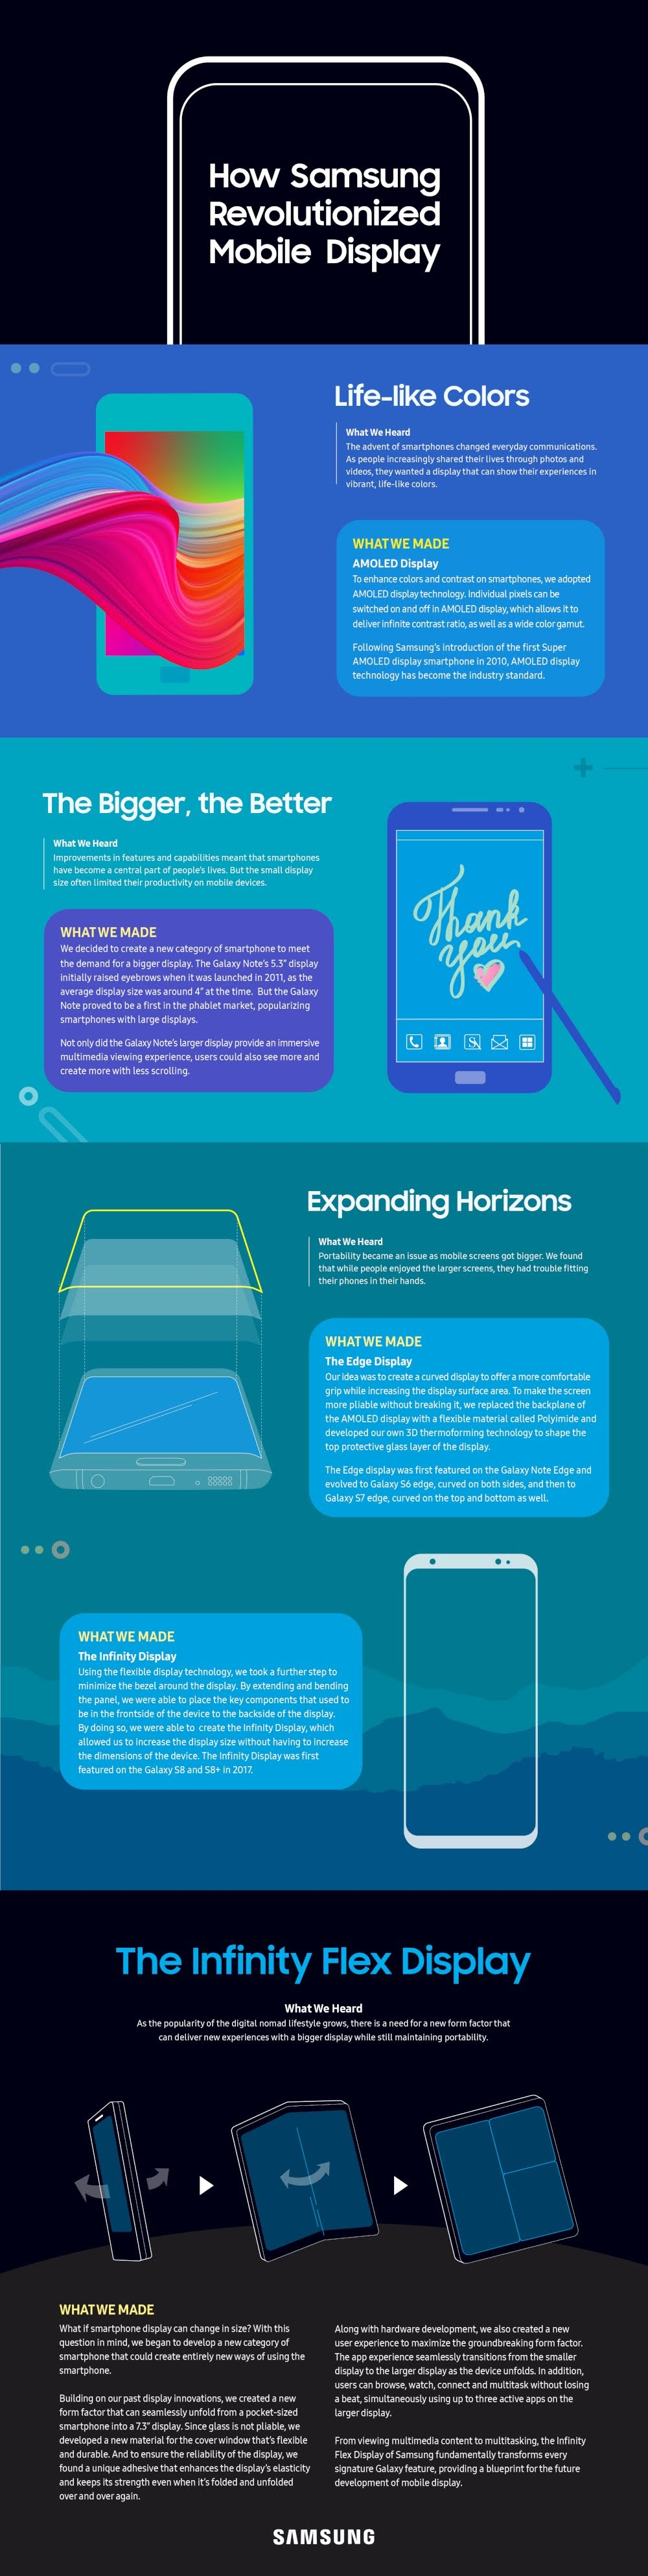 [Infographic] How Samsung Revolutionized Mobile Display